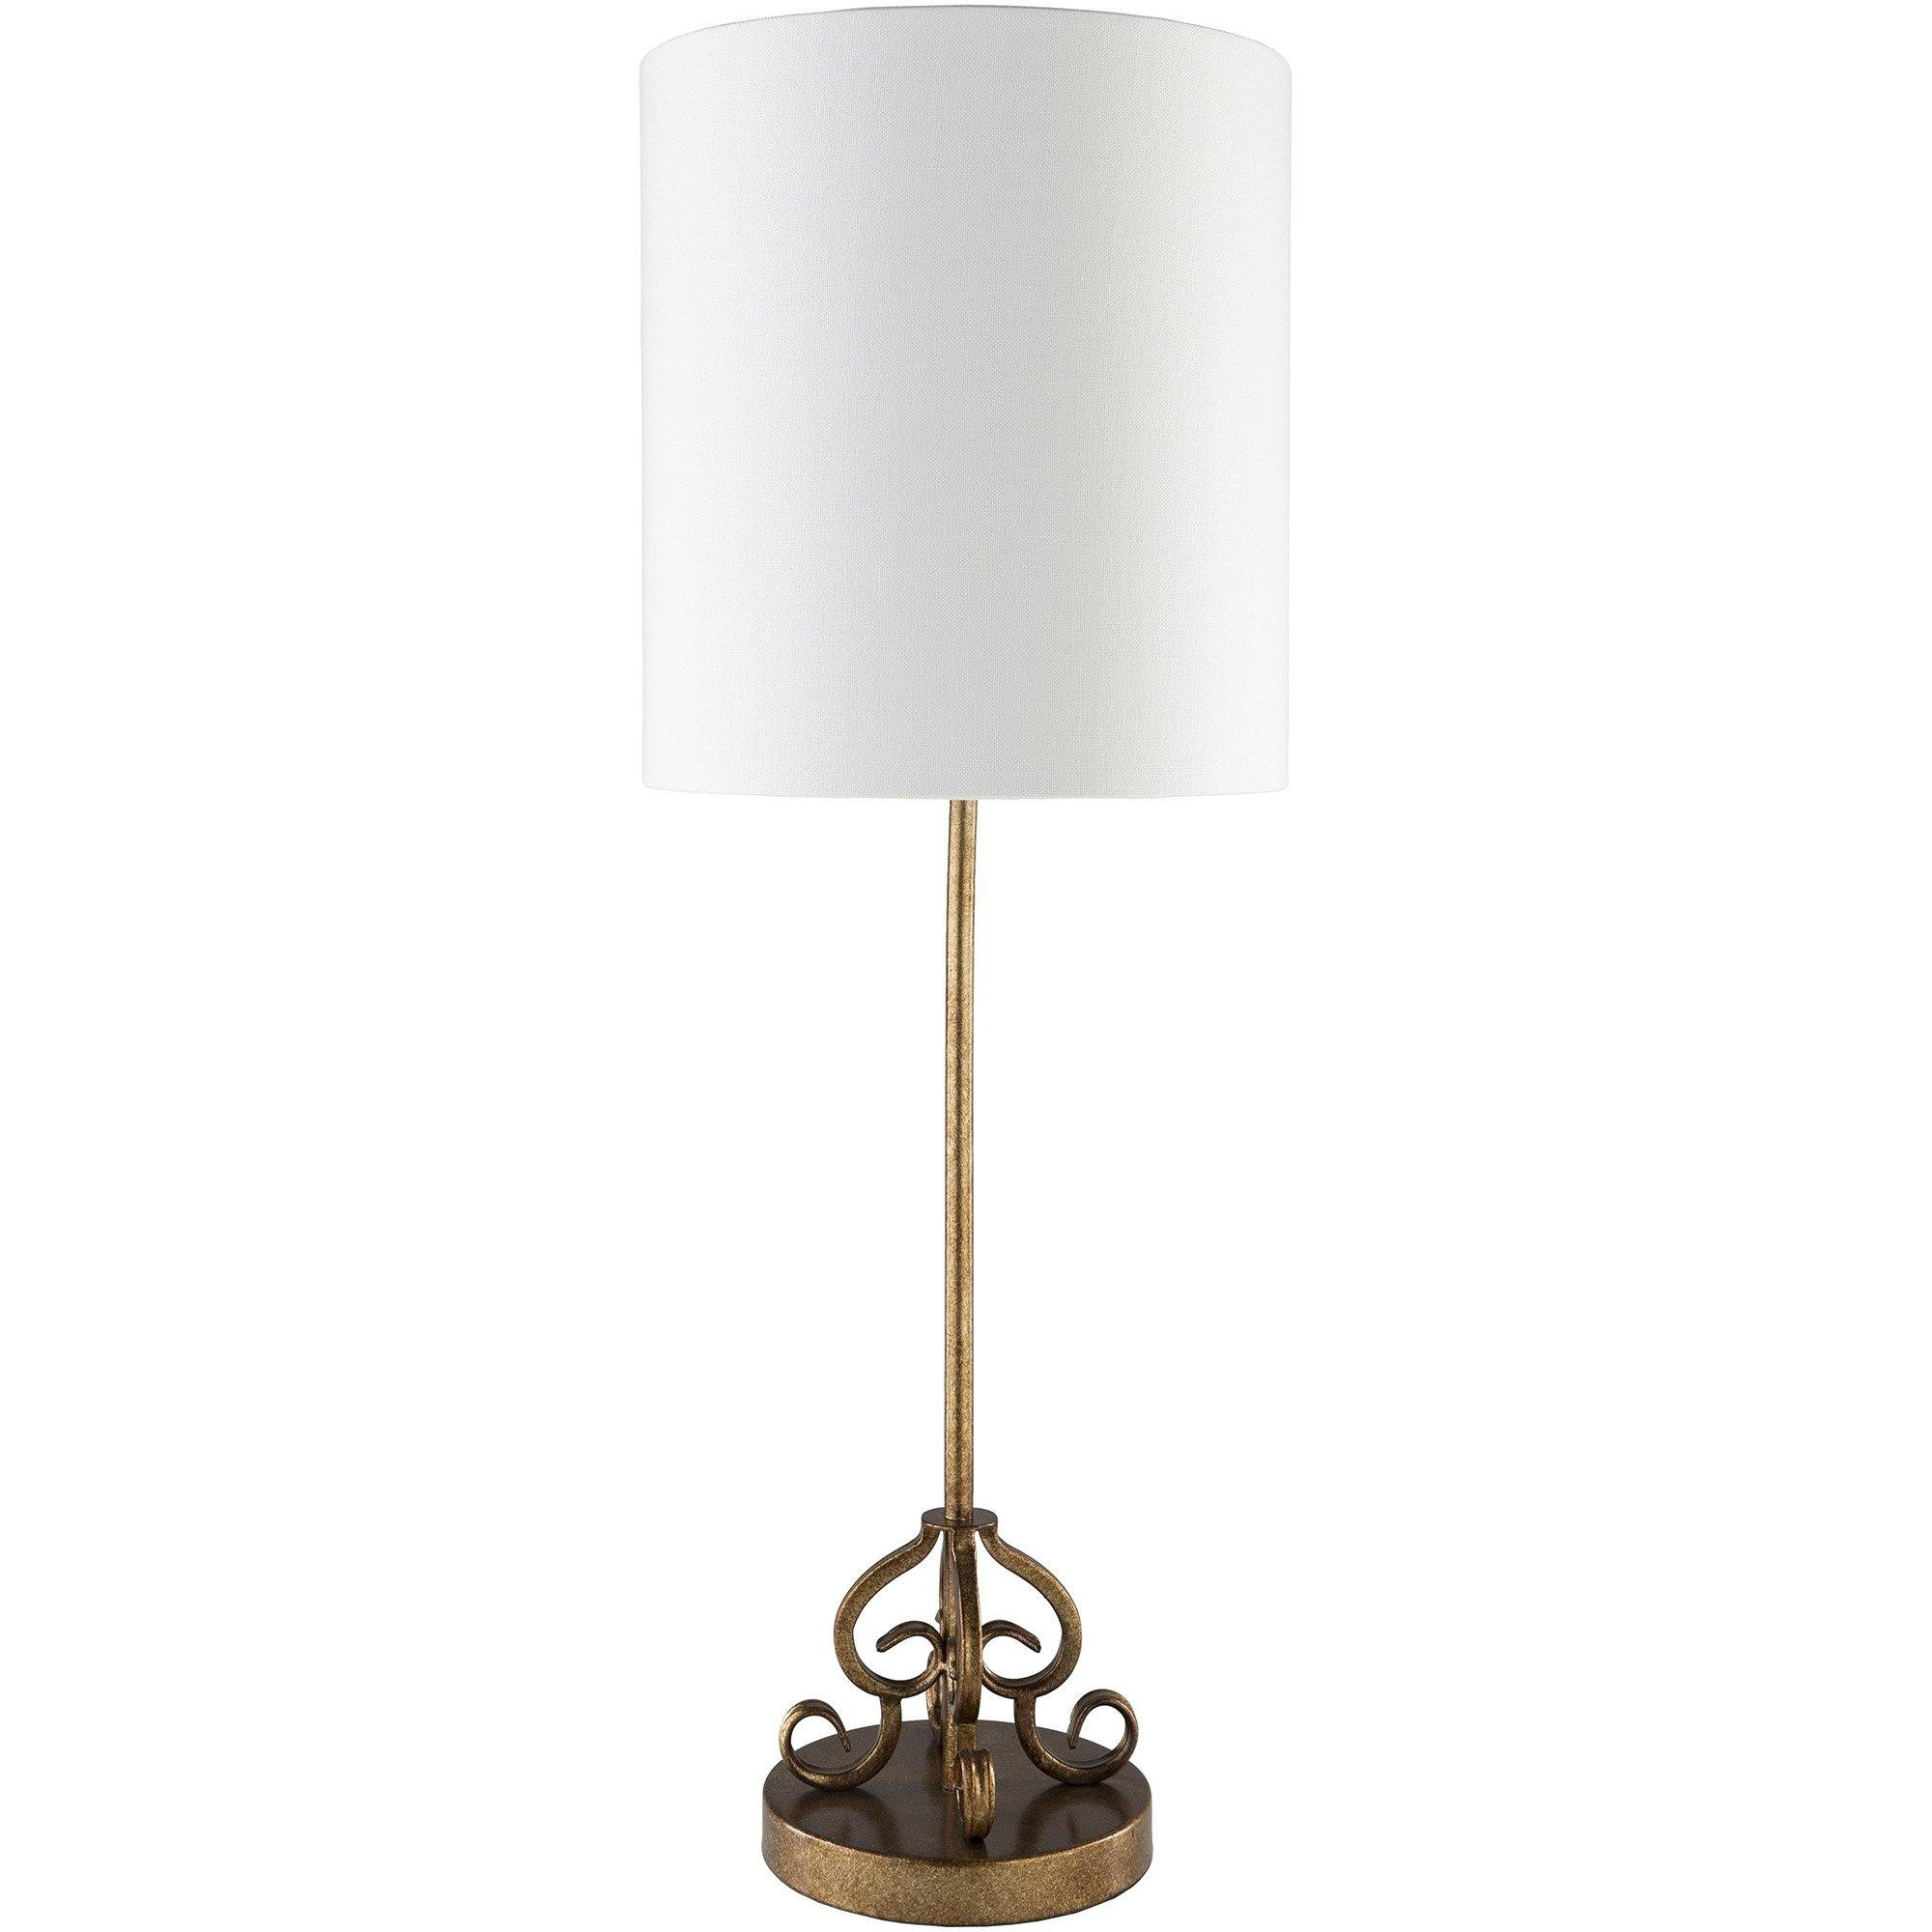 gold accent decorative modern table lamp